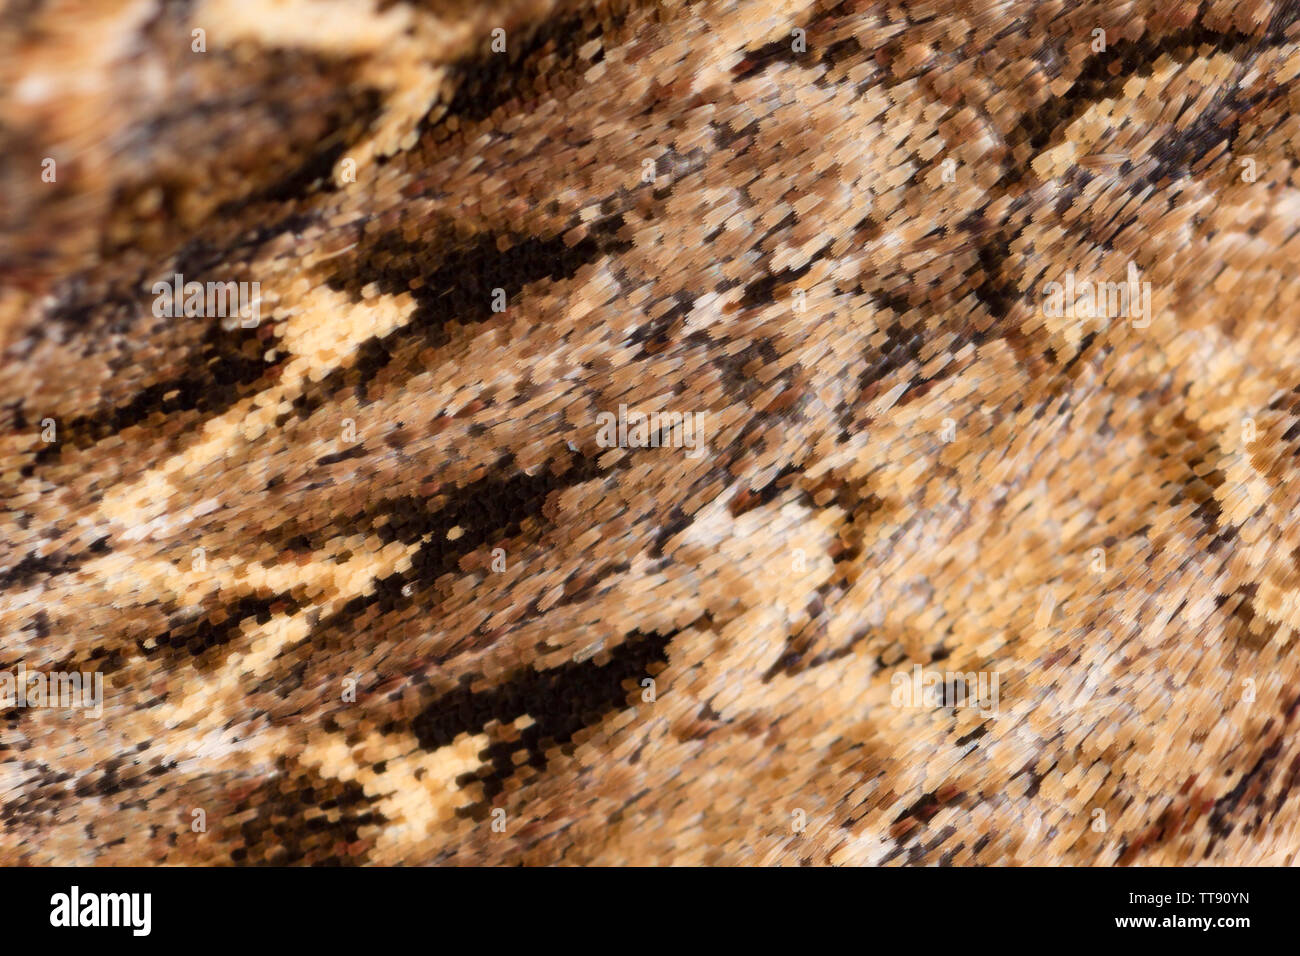 A close-up macro shot of the scales on the wings of a Dark Arches moth, Apamea monoglypha. The moth was attracted to house lights and its patterning o - Stock Image